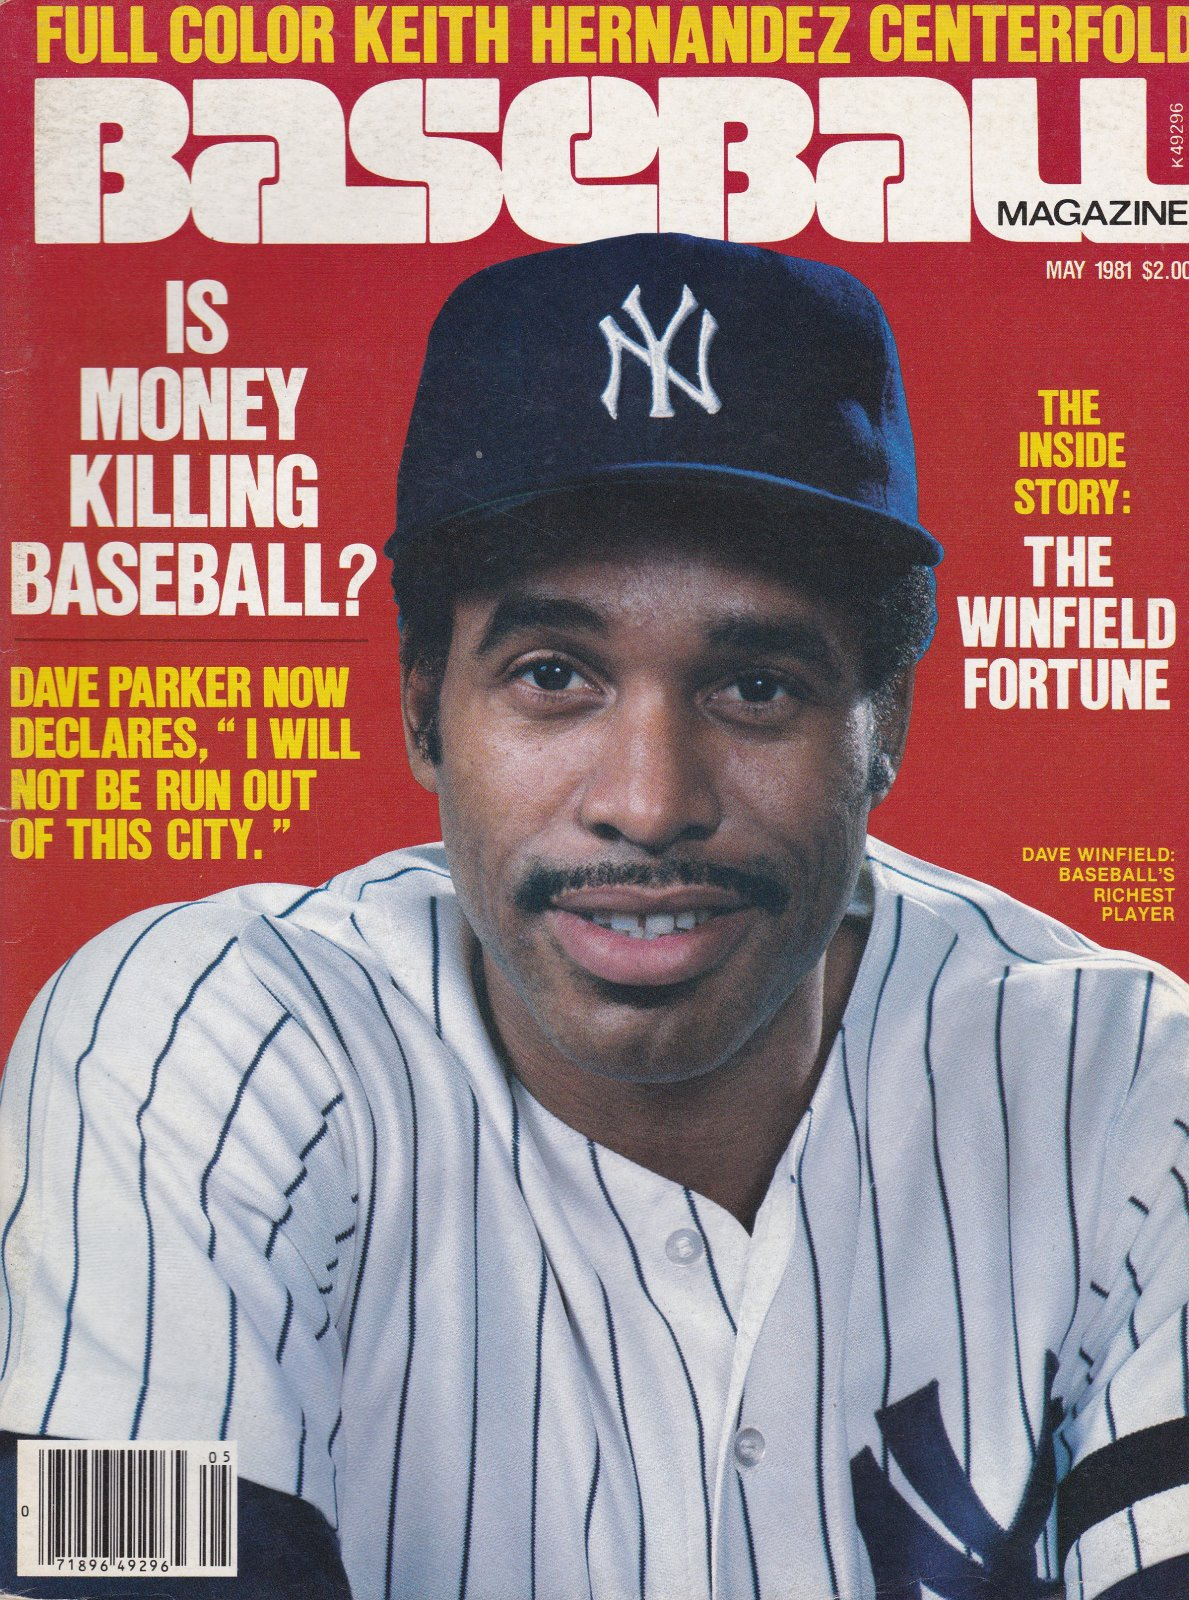 Baseball Magazine May 1981 Vol 5 No 2